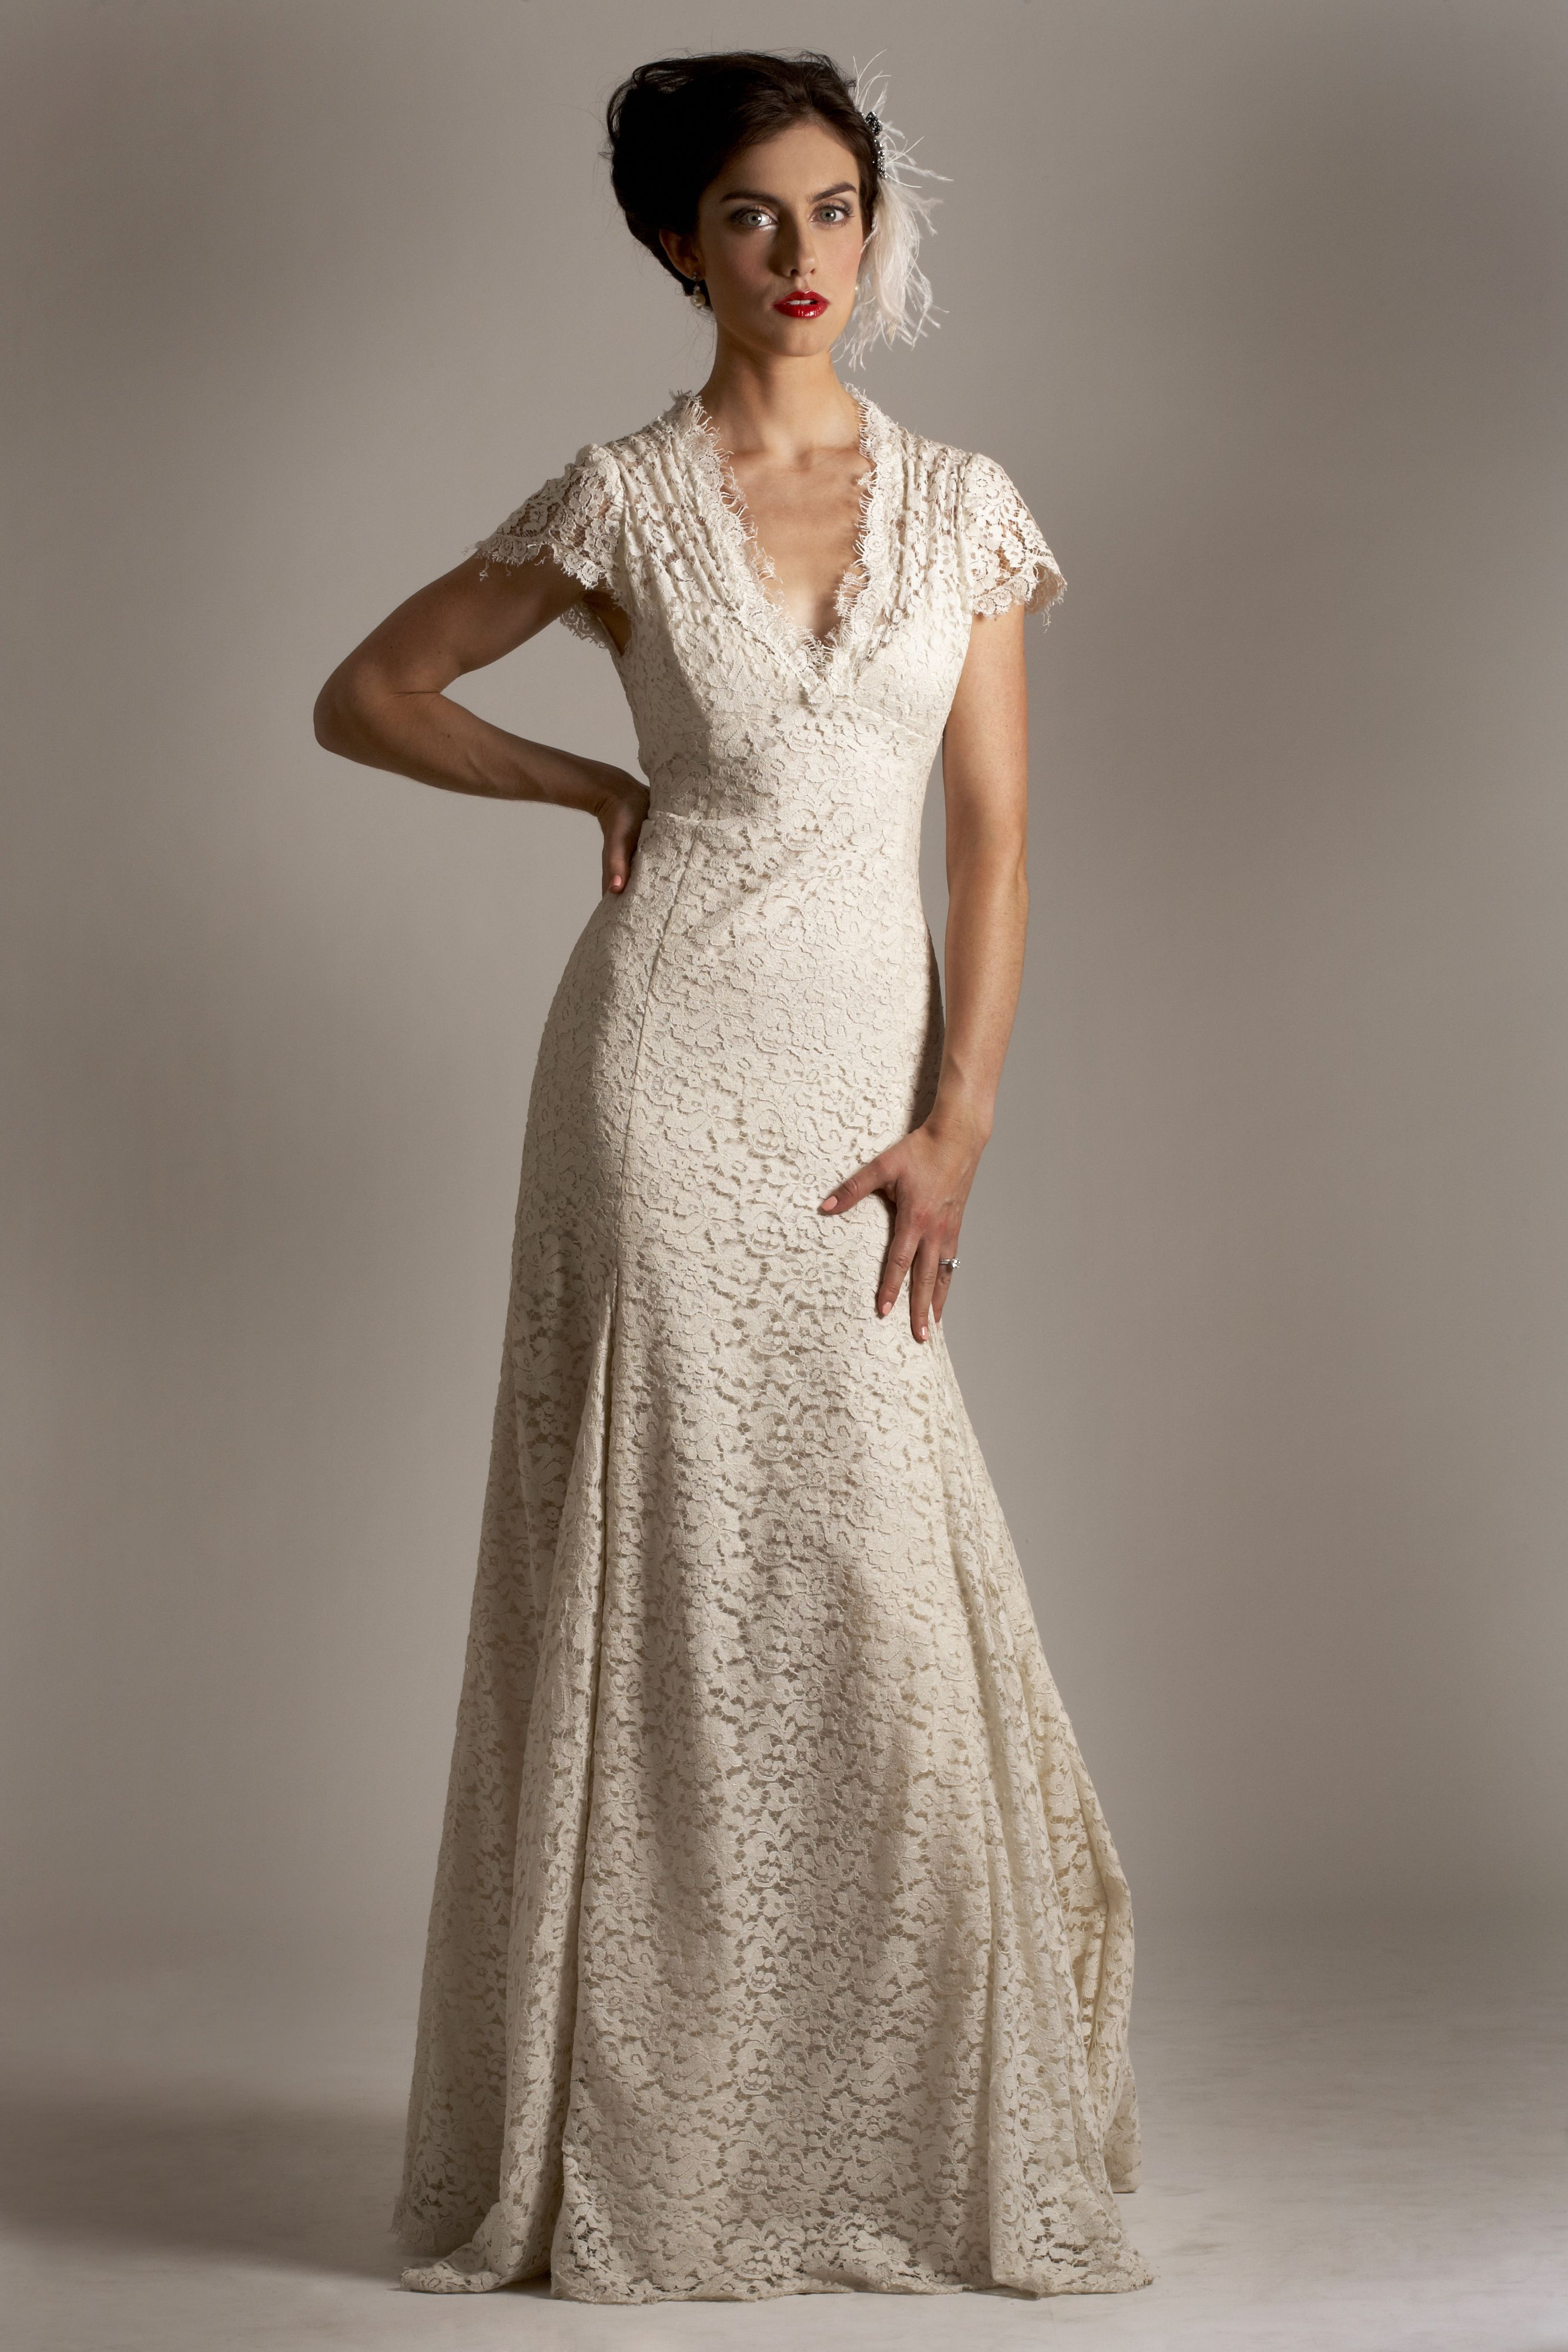 Wedding Dresses for Women Over 40 | 10 Bridal Stores in Brooklyn ...